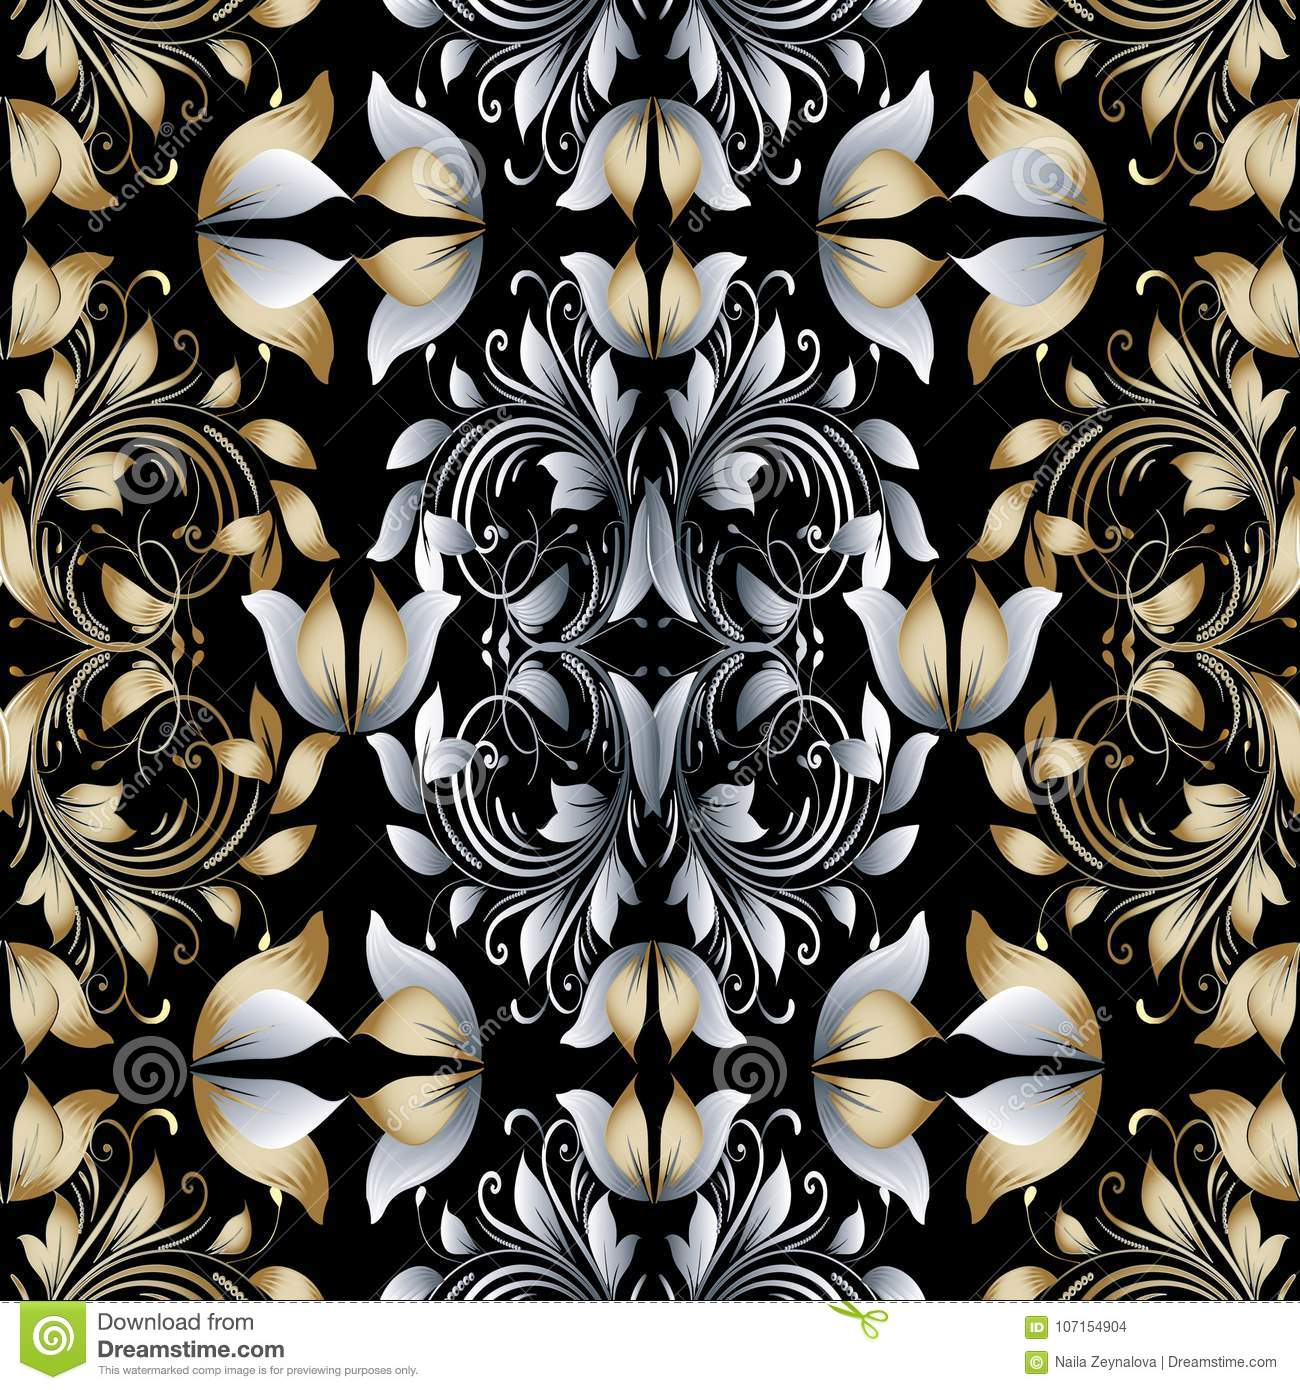 Vintage Seamless Black And White Floral Pattern Vector ...   Black Floral Vintage Pattern